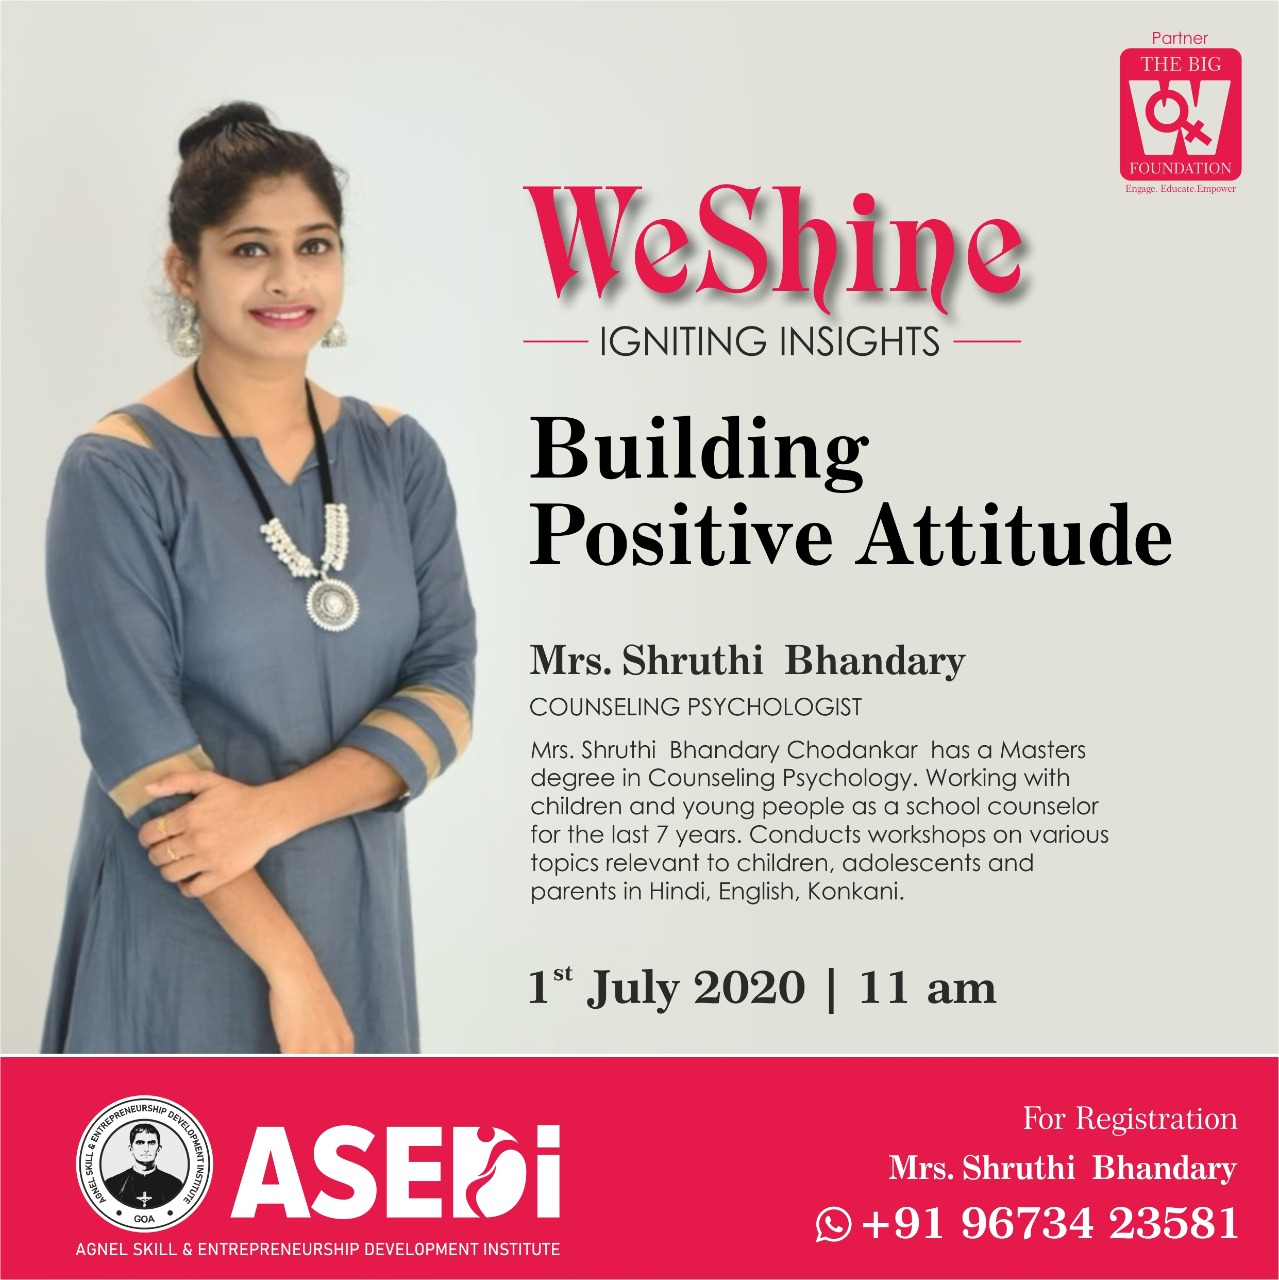 ciba-WeSHINE - Building Positive Attitude